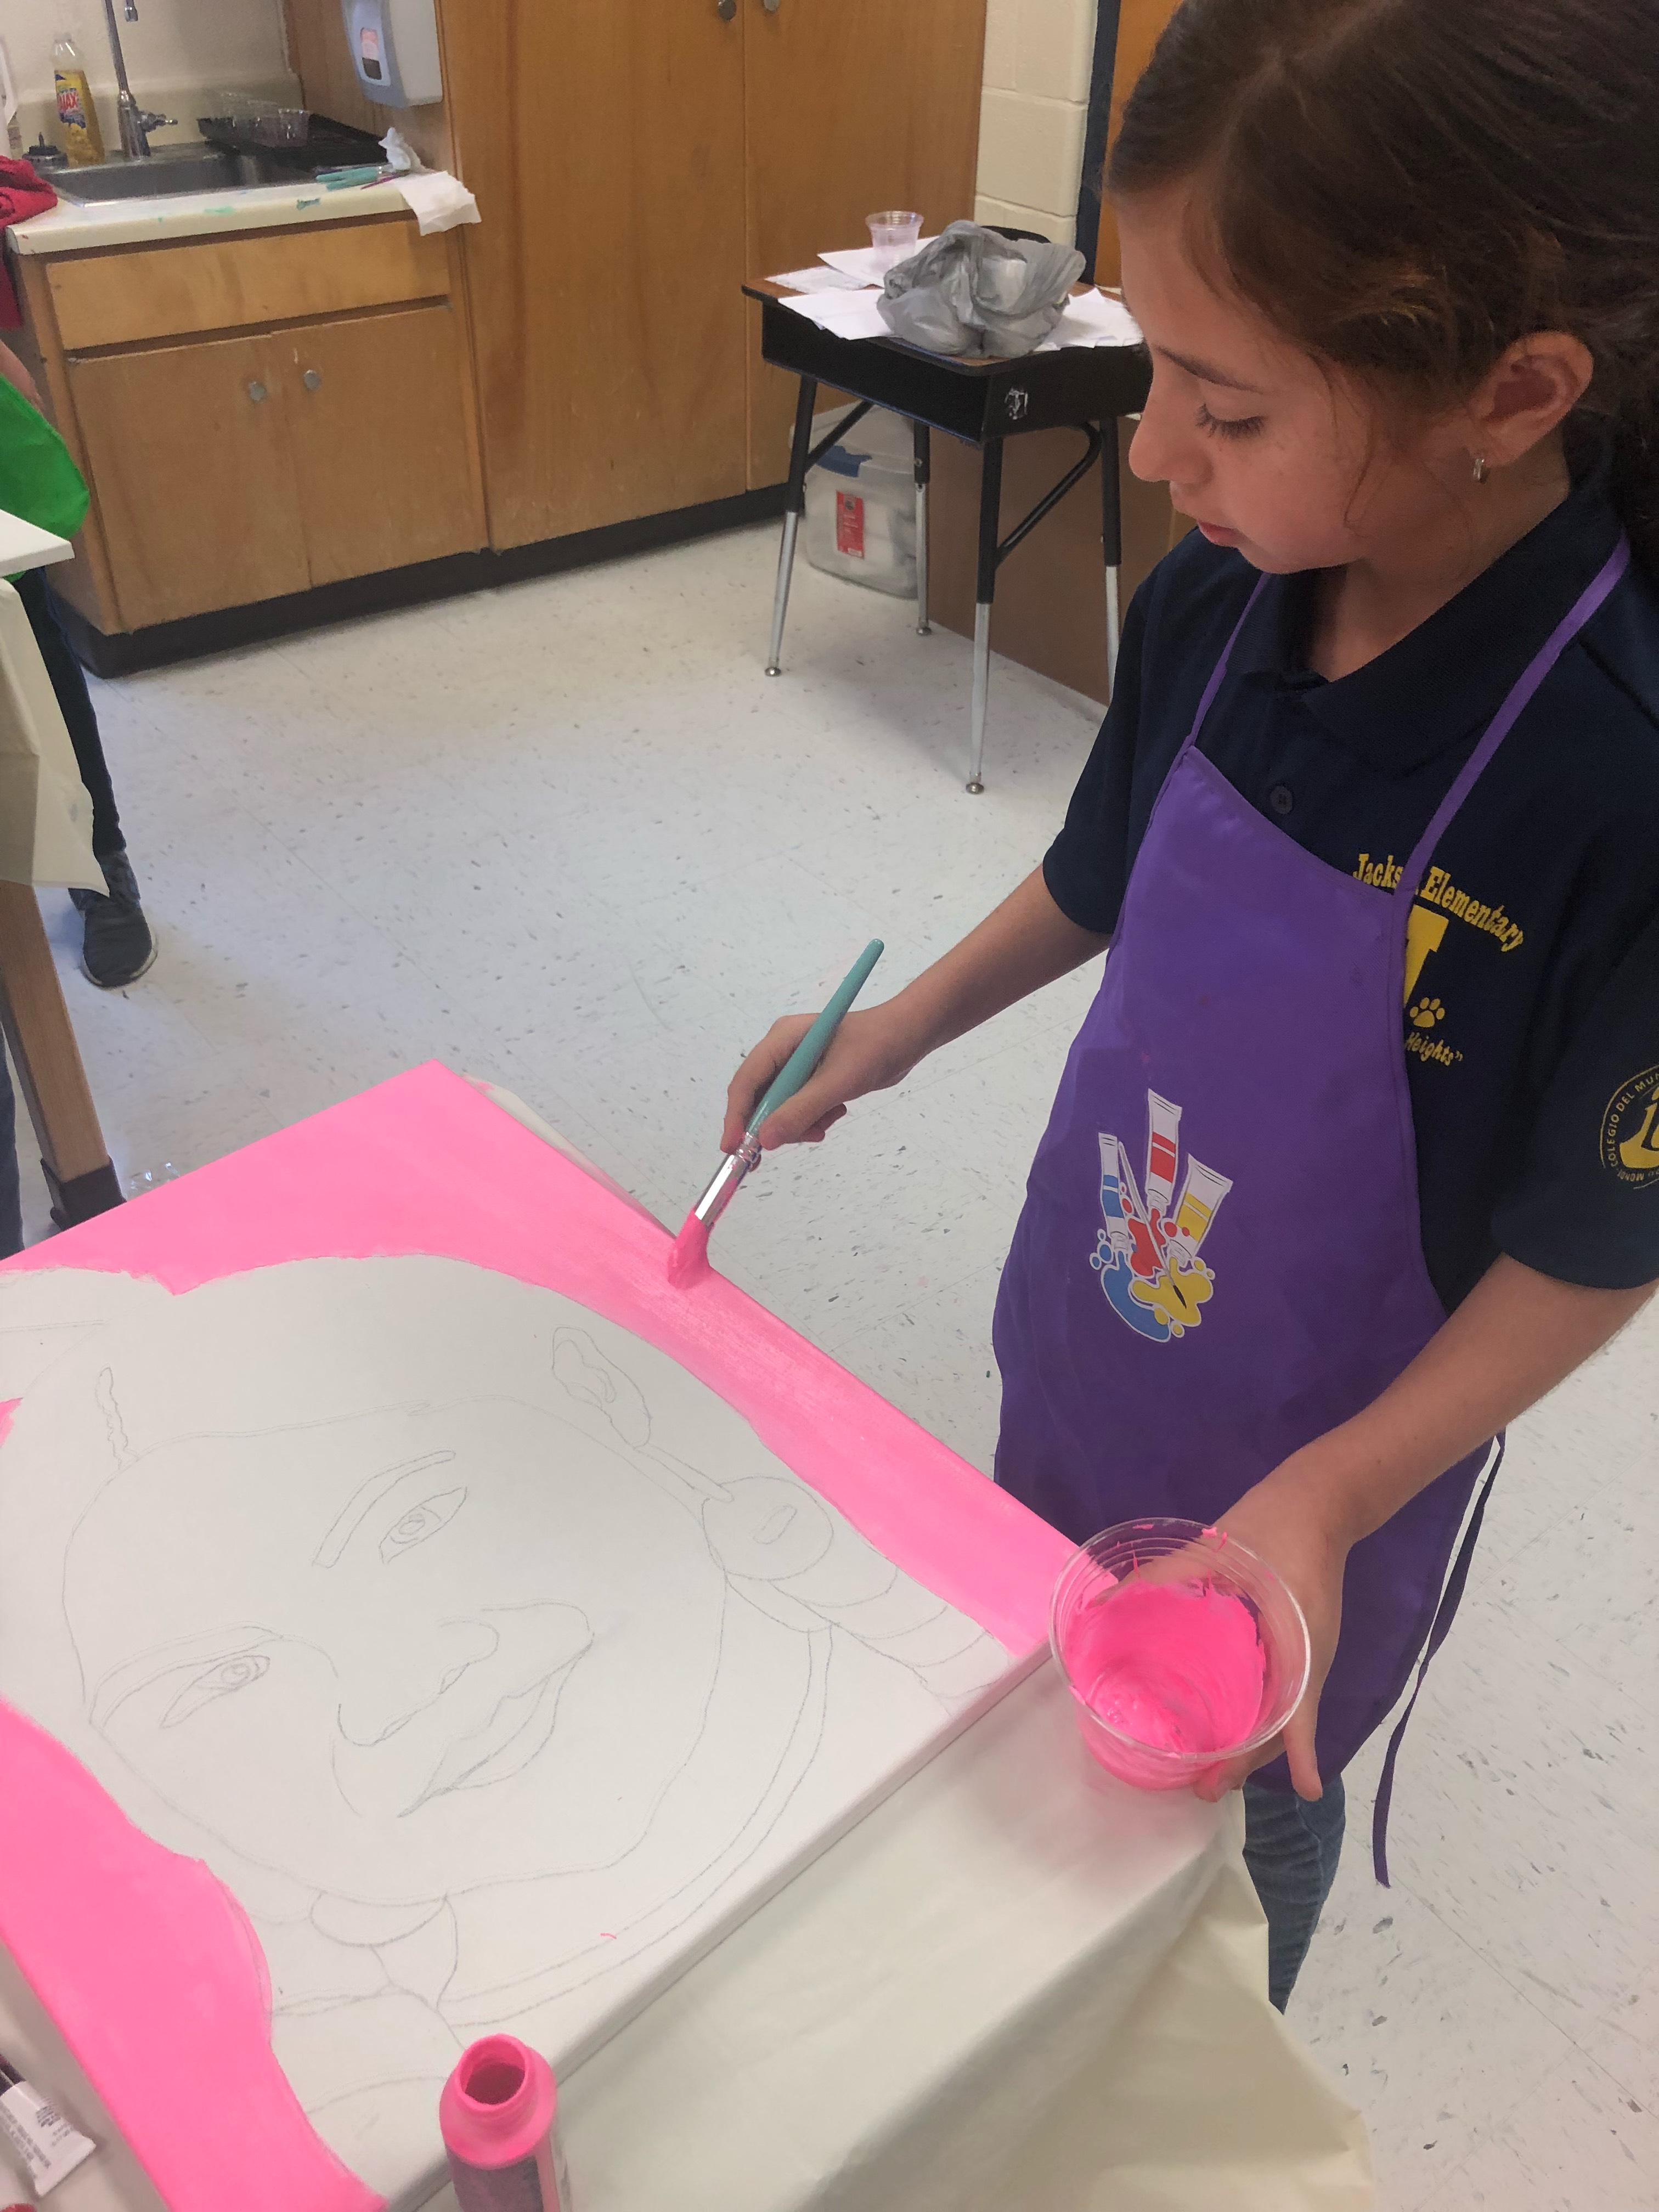 Students creating art.